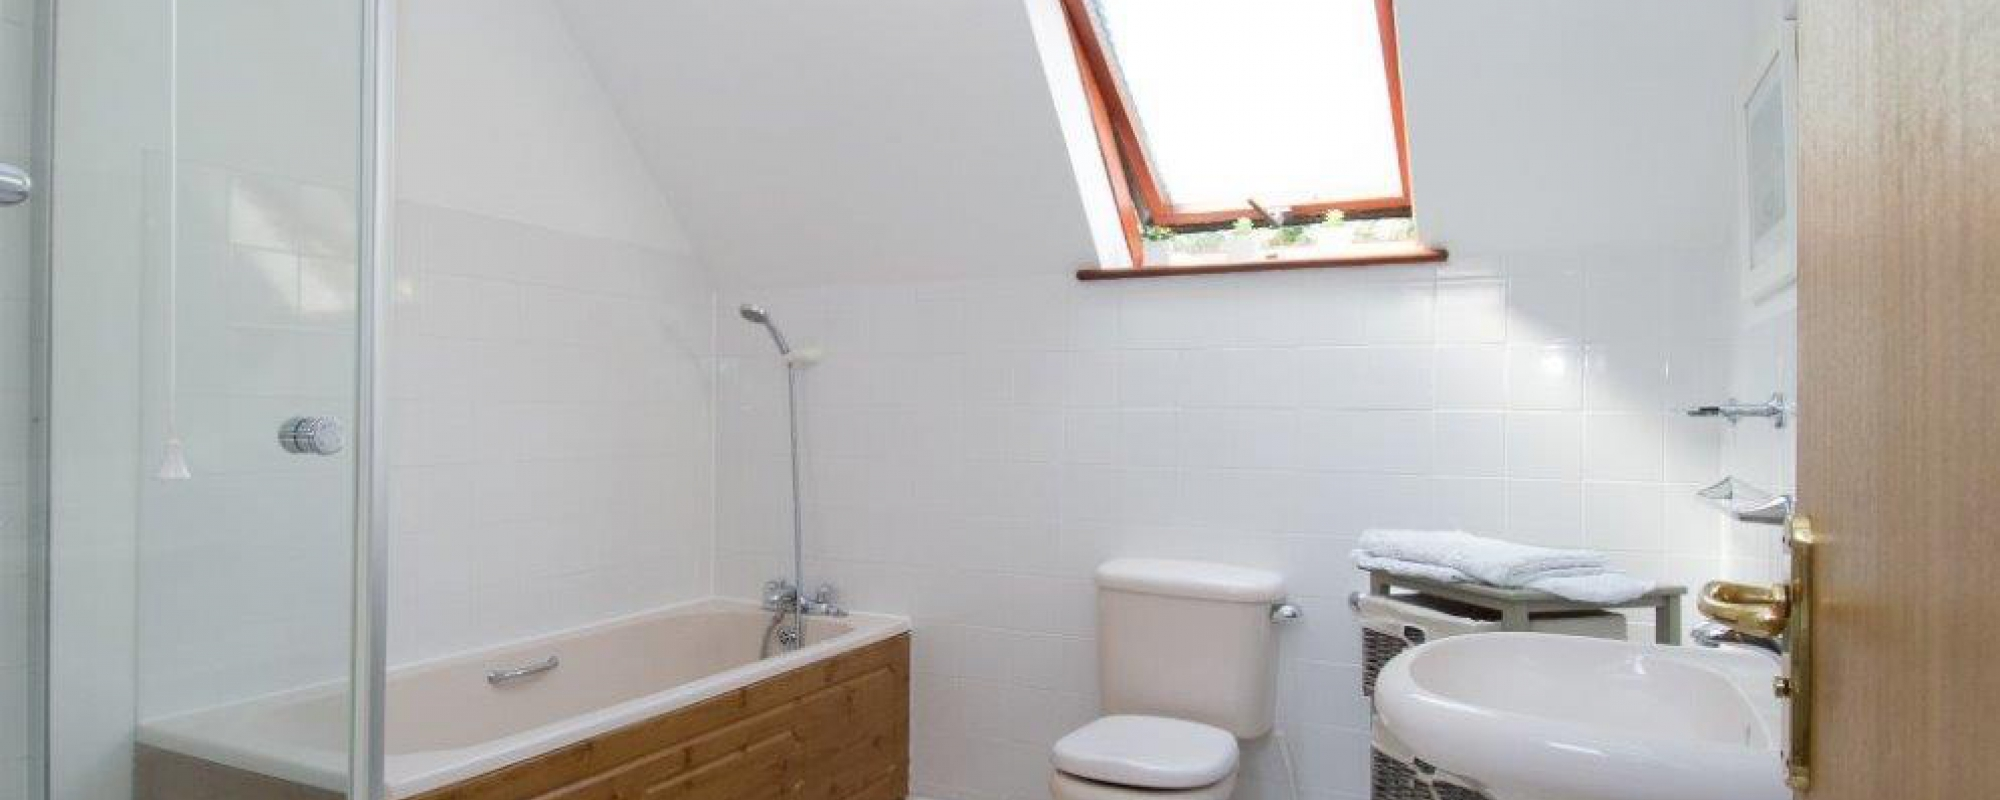 Family Carers Bathroom